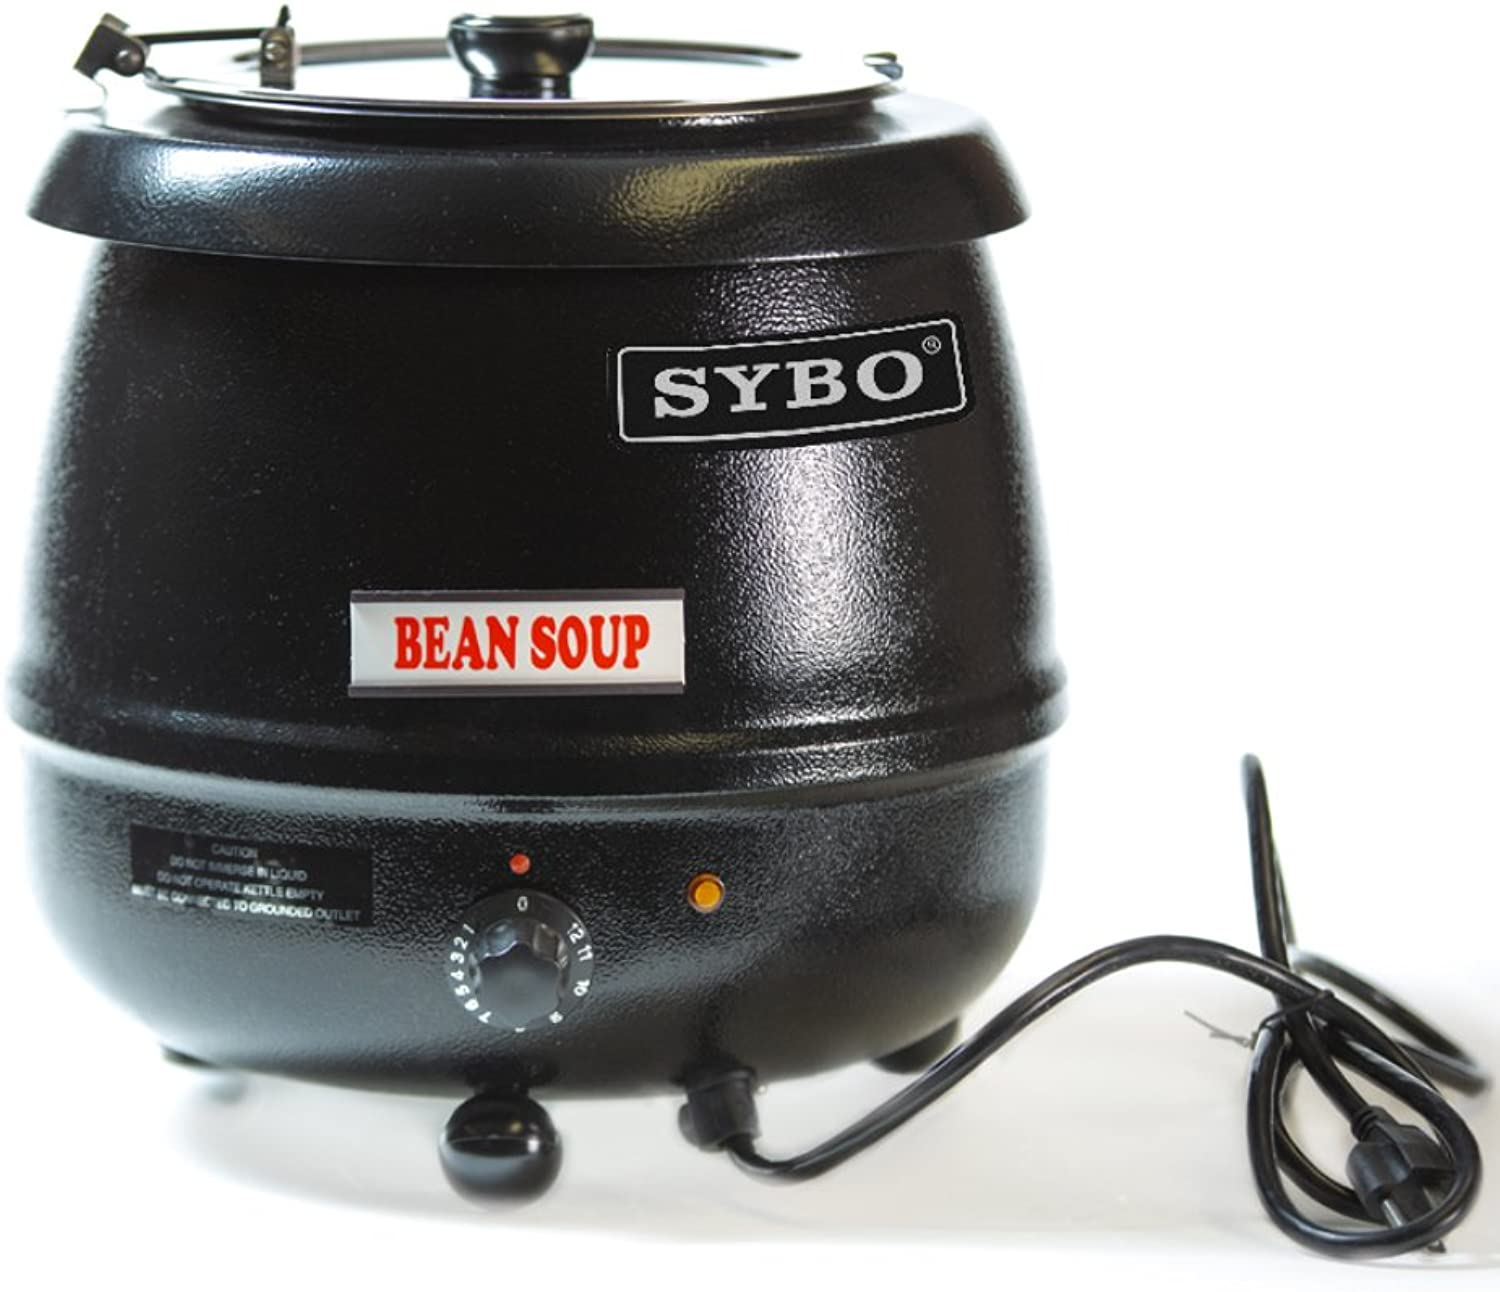 SYBO SB6000 SB-6000 Soup Kettle, 10.5 Quarts, Black and Sliver